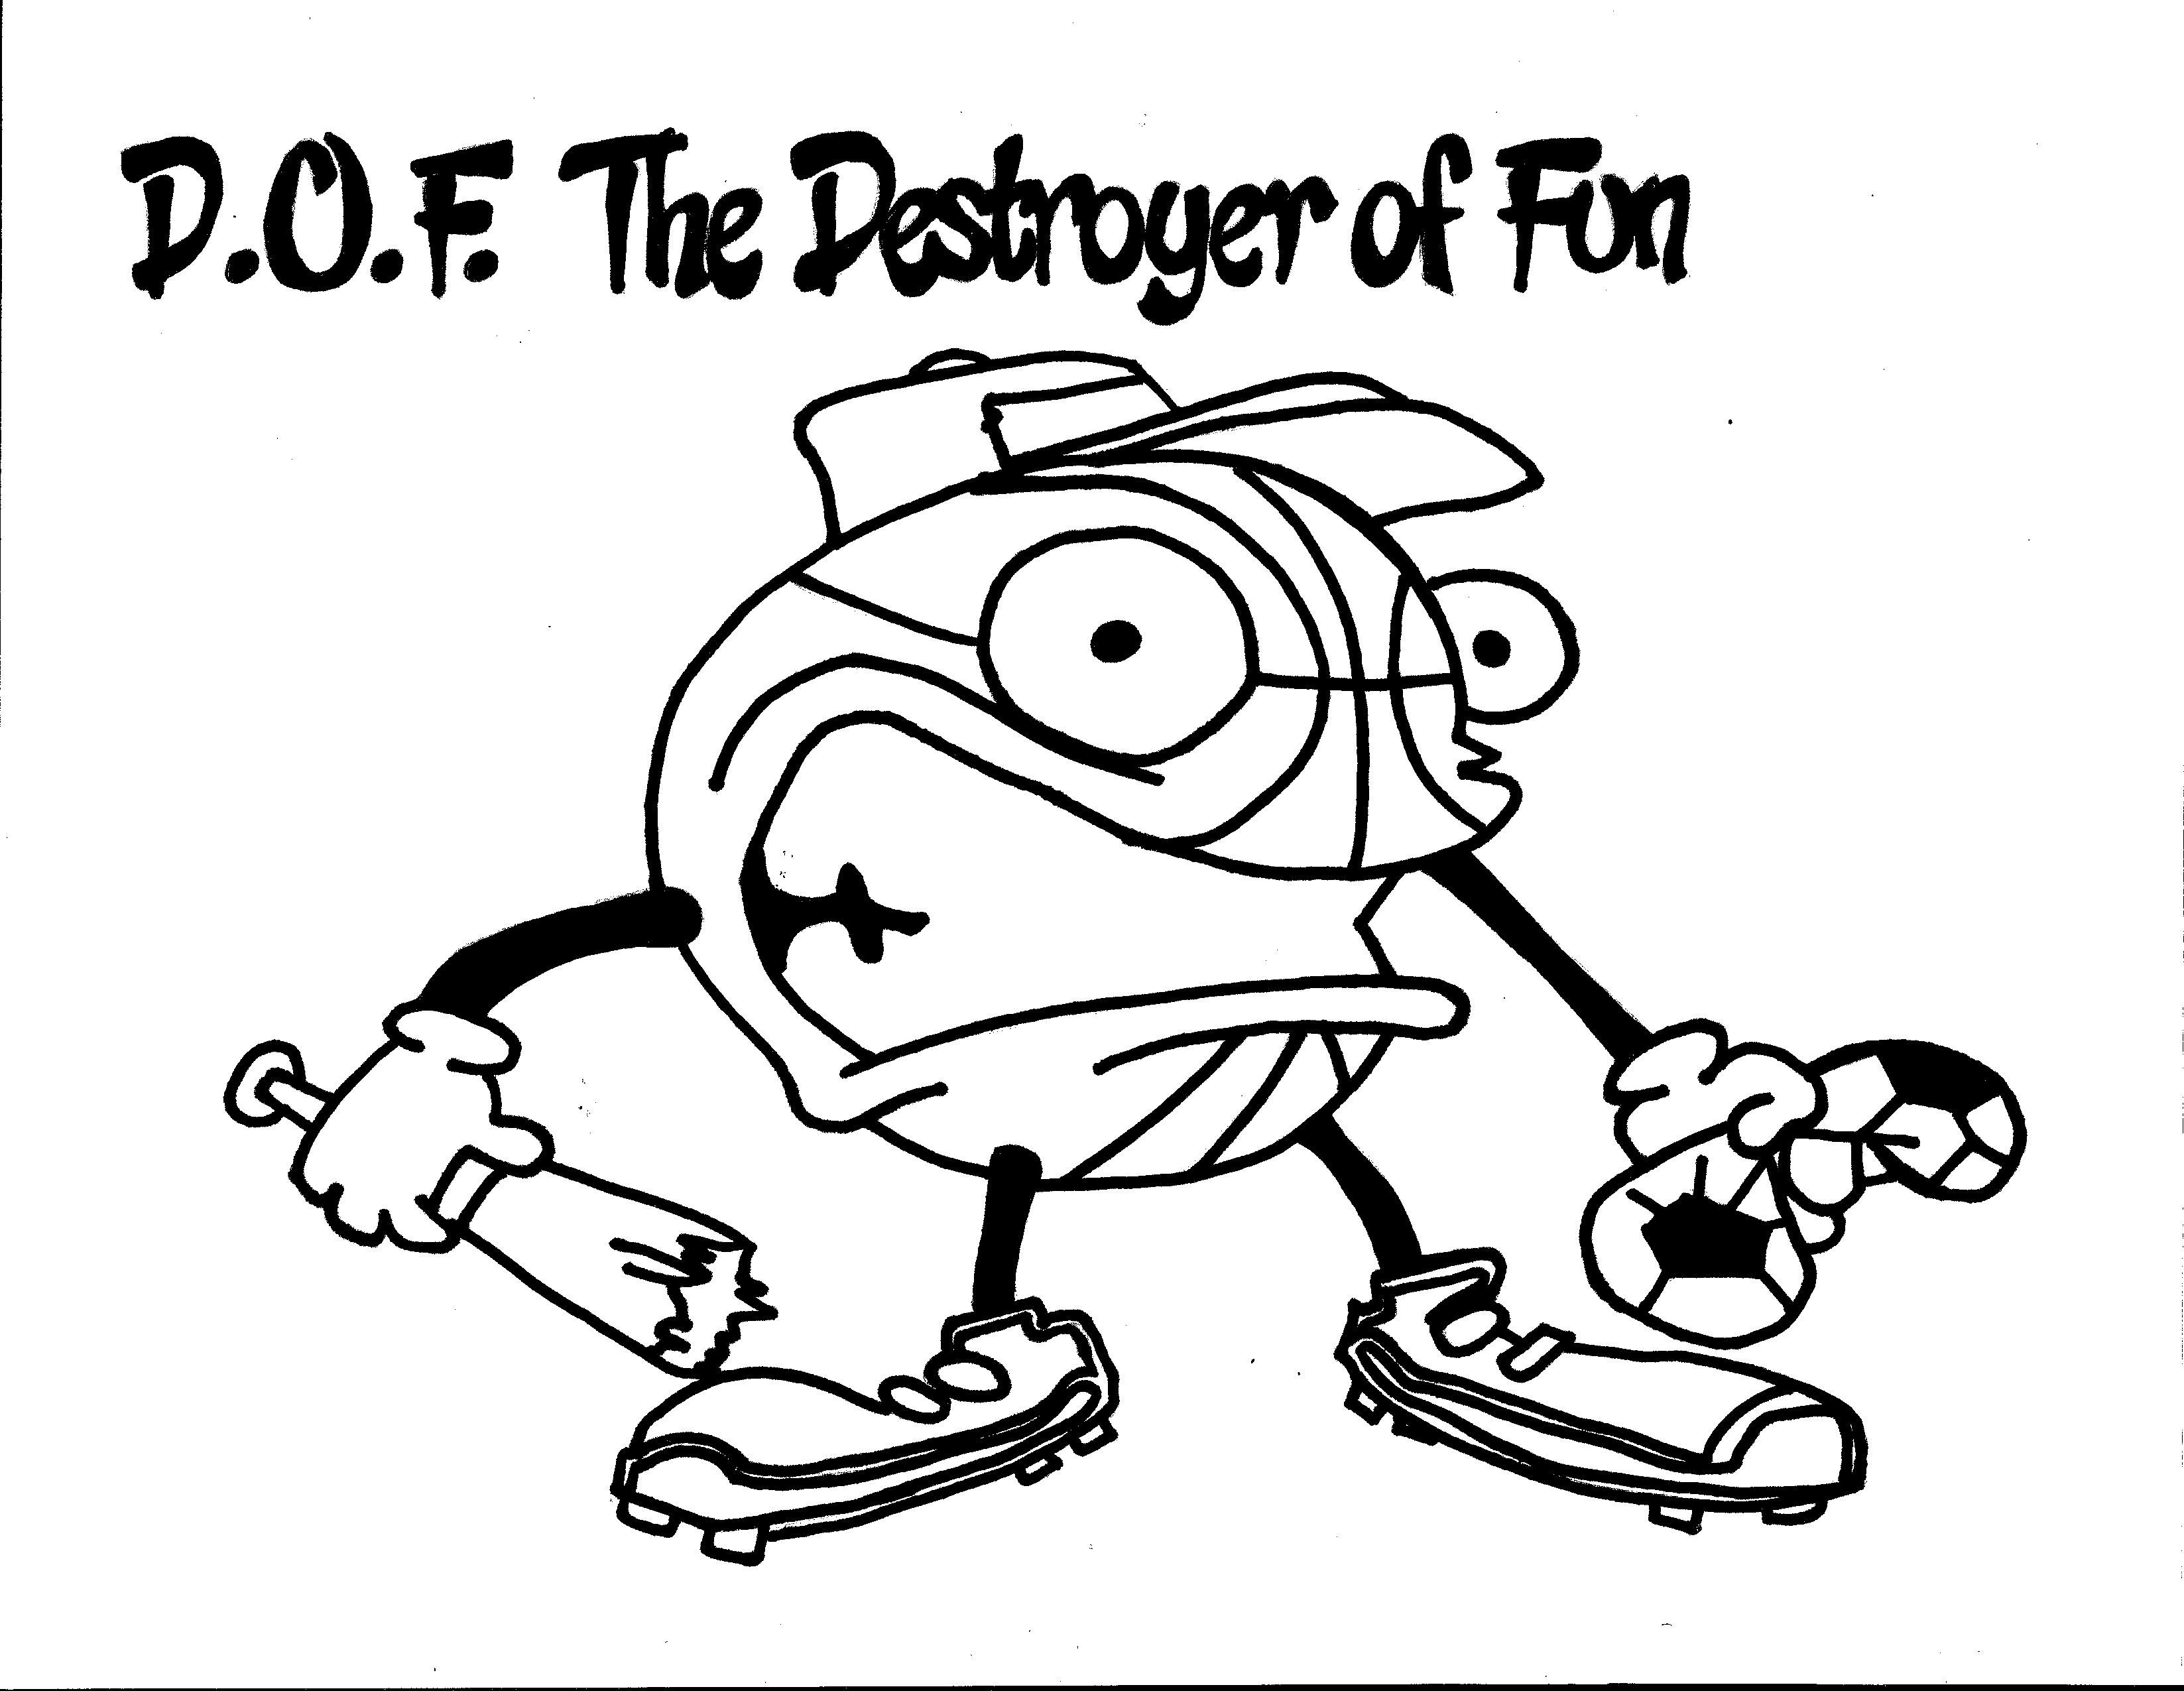 superflex social skills coloring pages | D.O.F The Destroyer of Fun Coloring Page. Team ...